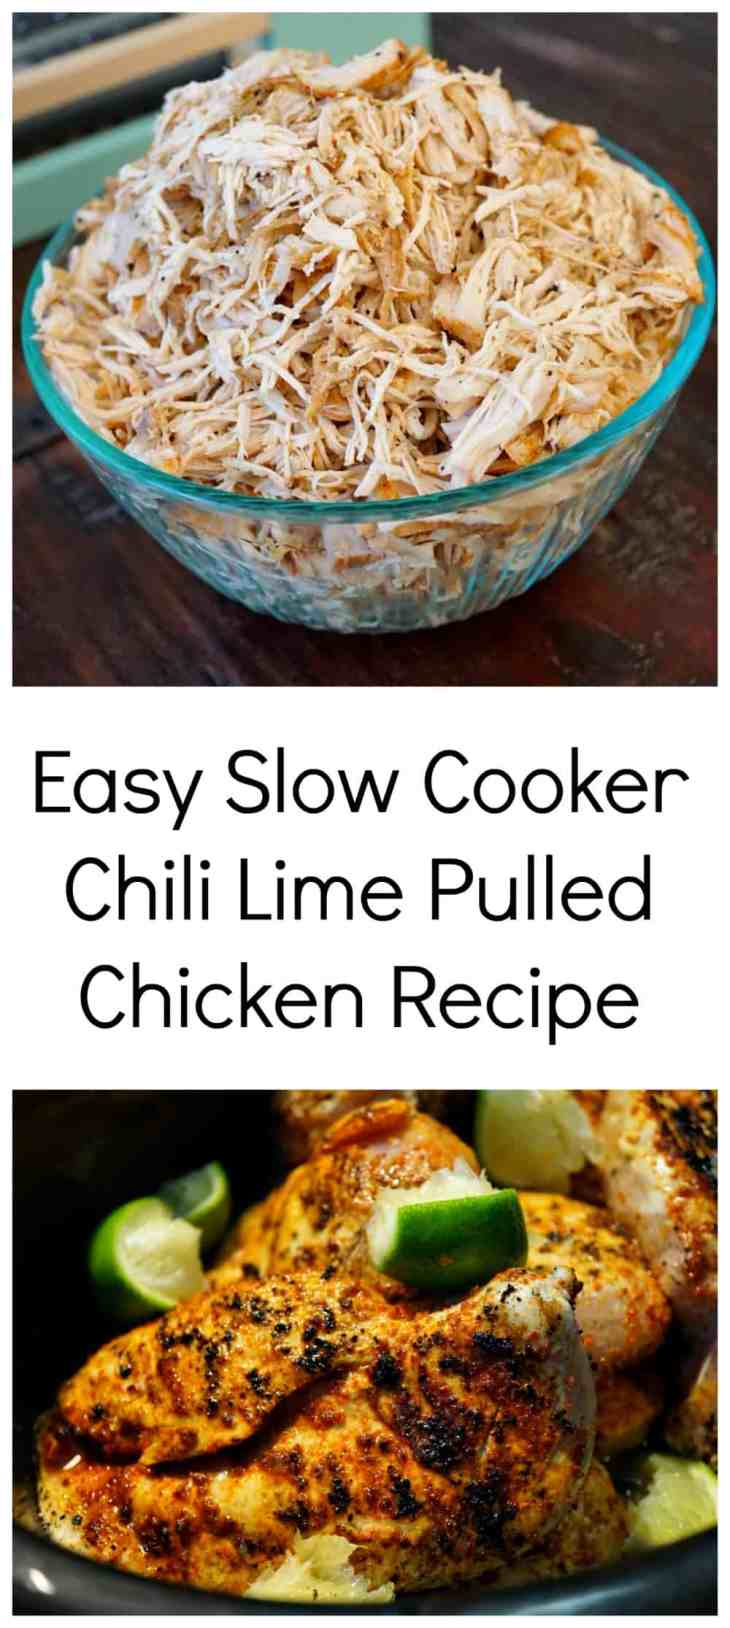 slow cooker chili lime pulled chicken